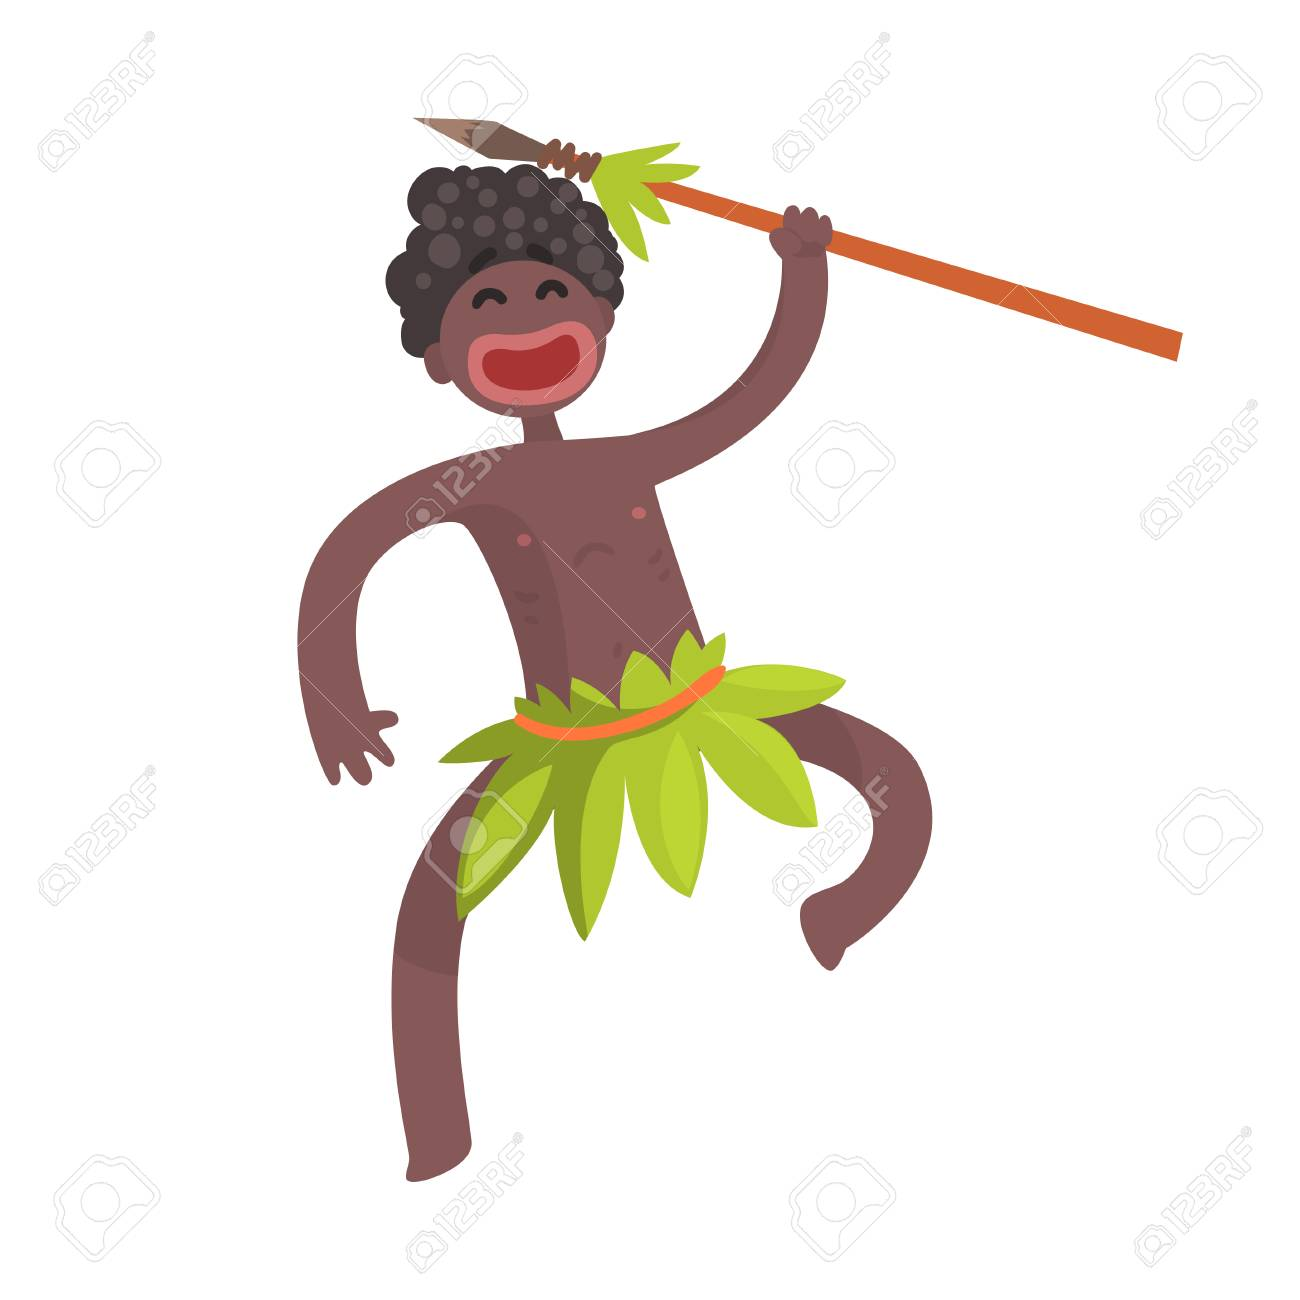 Funny black skinned aboriginal warrior with weapon - 90371809